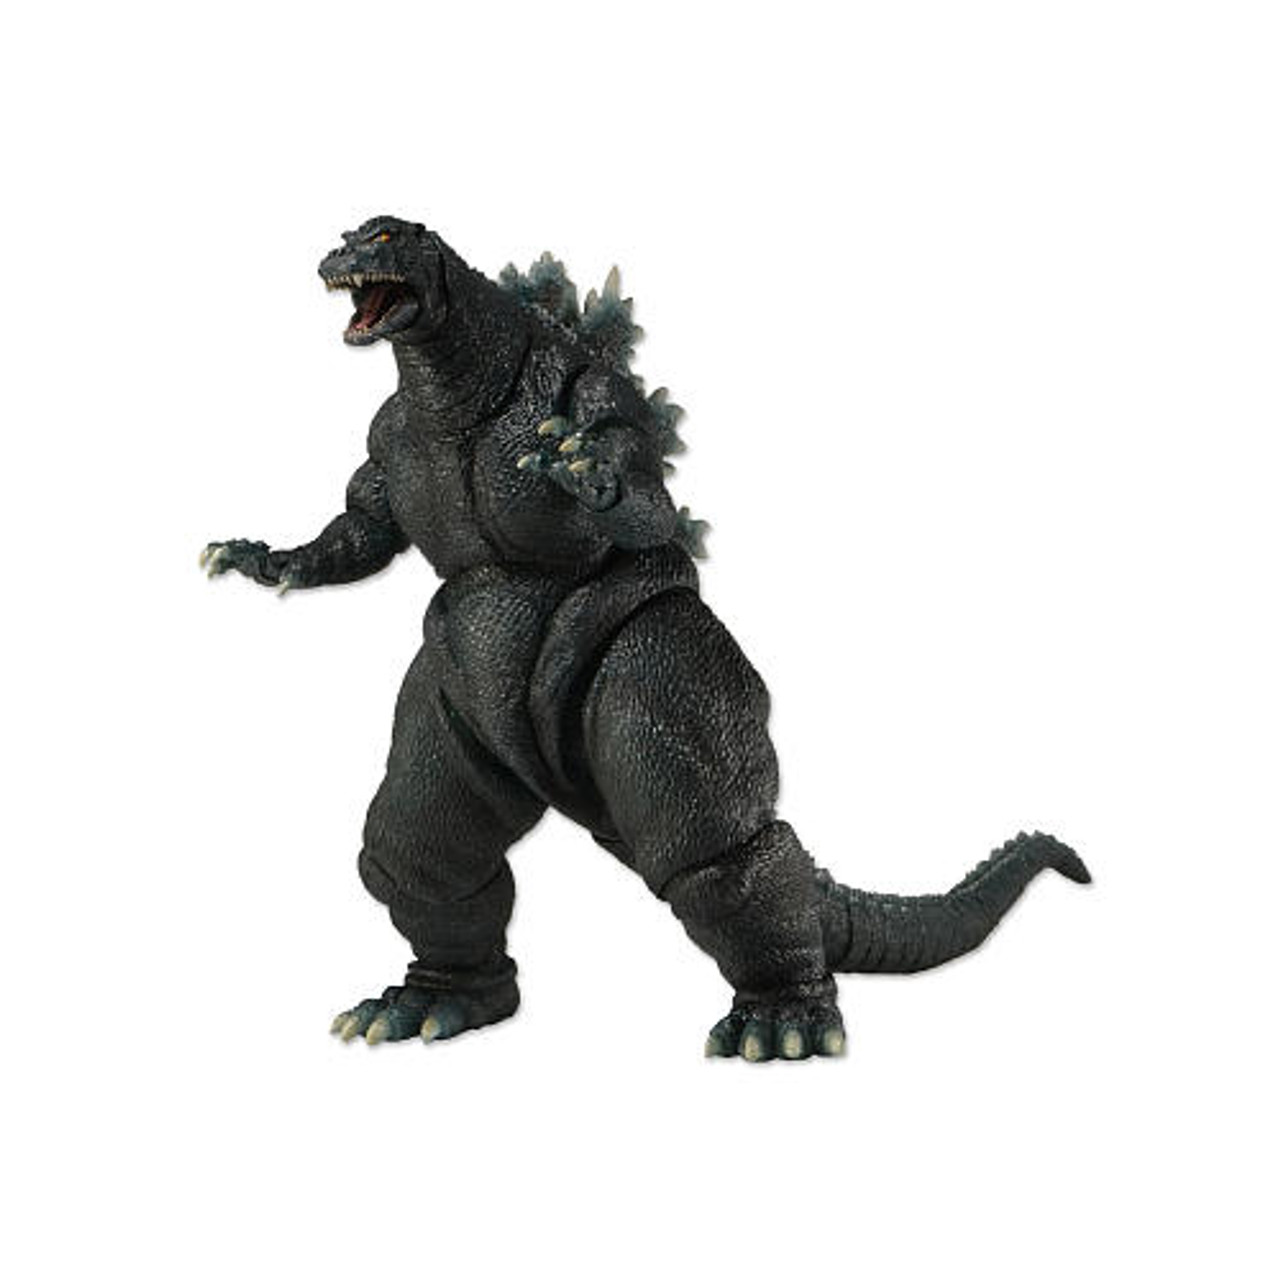 Godzilla Series 1 Classic 1994 12 Inch Action Figure